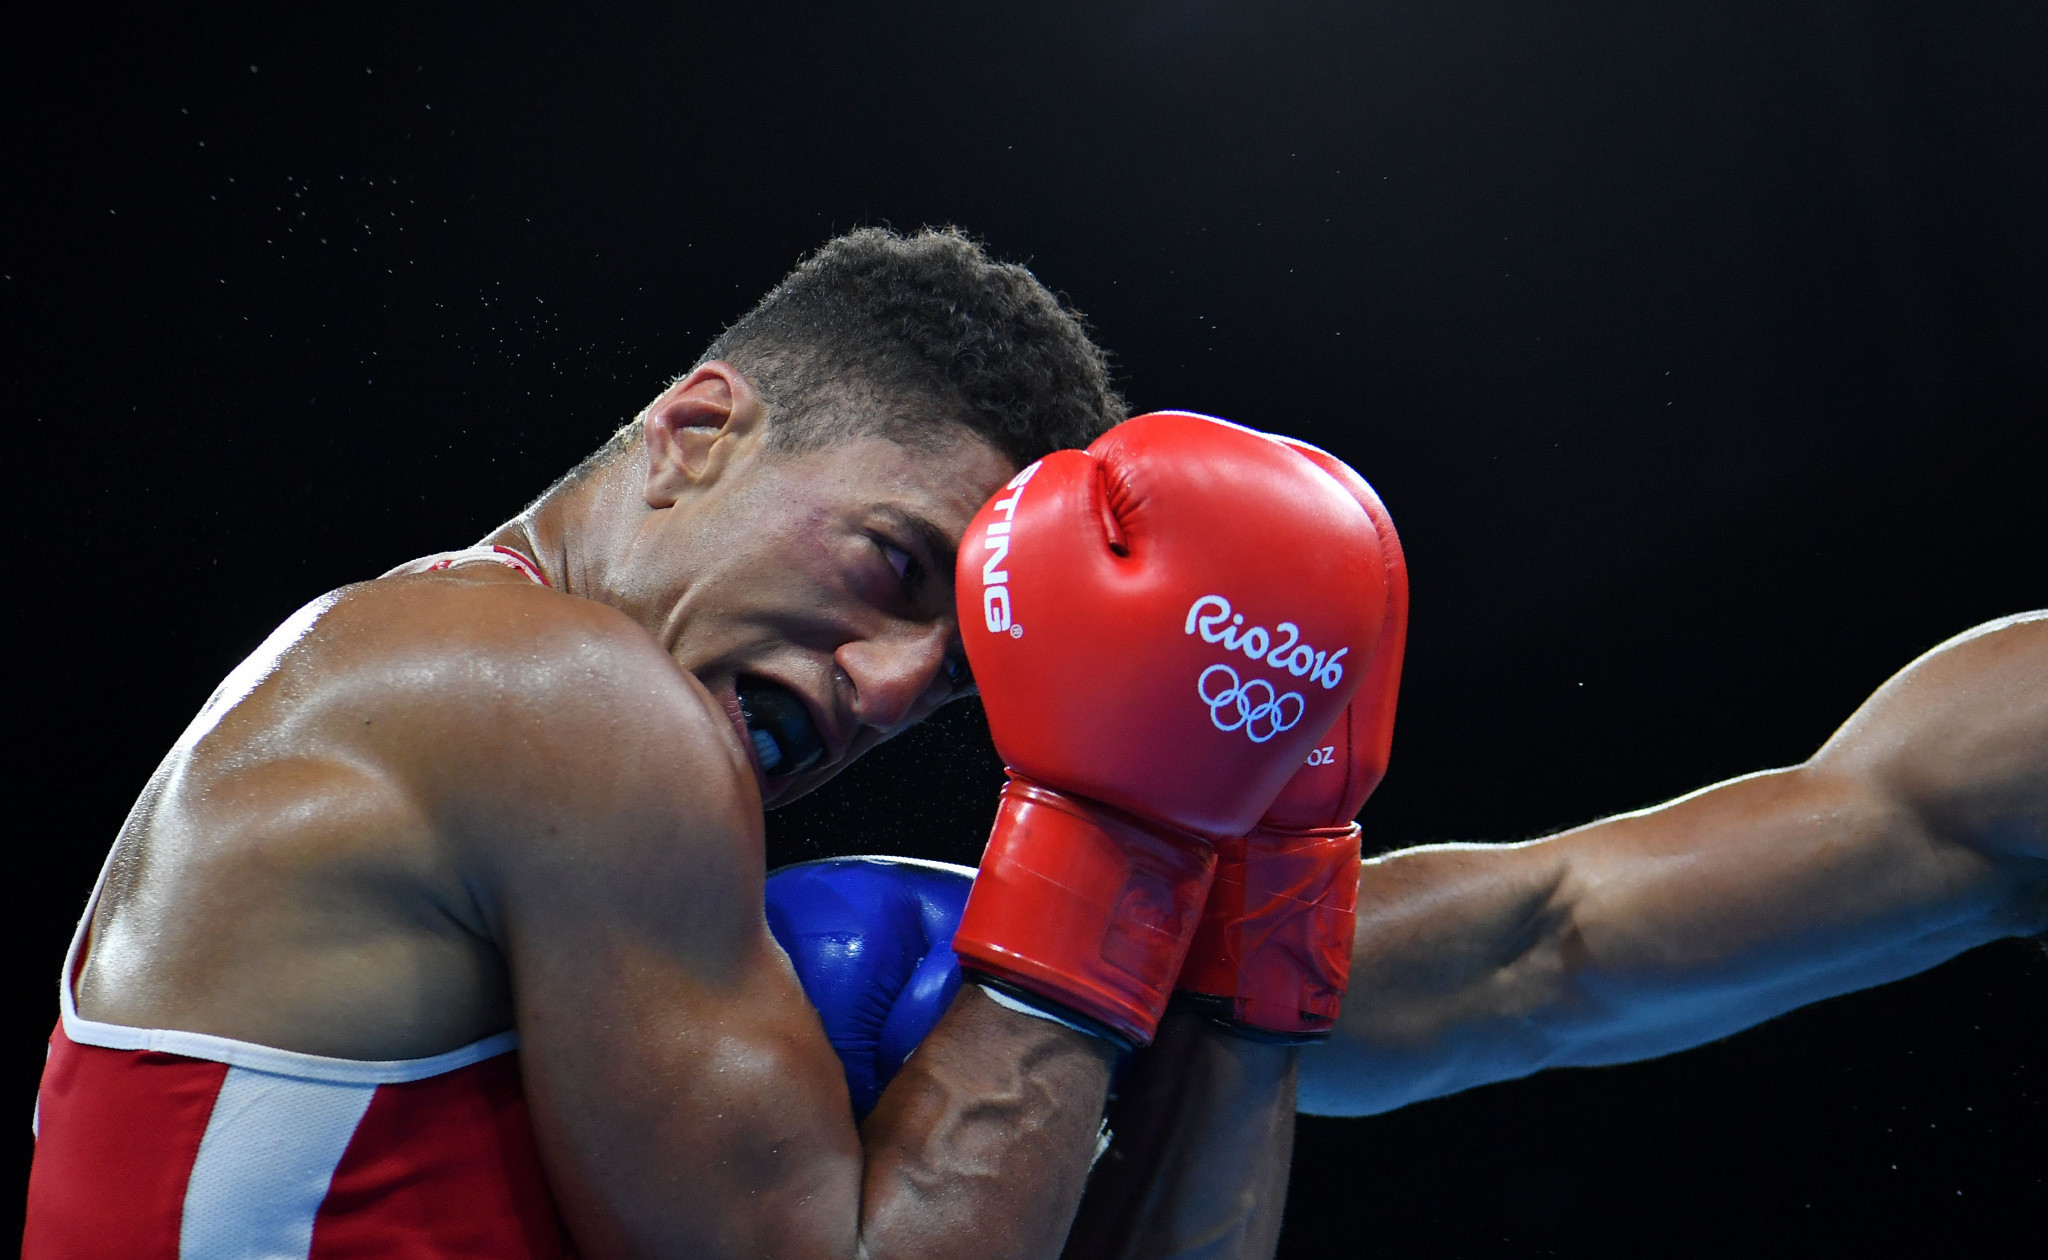 Olympic boxing is fighting for its survival ©Getty Images